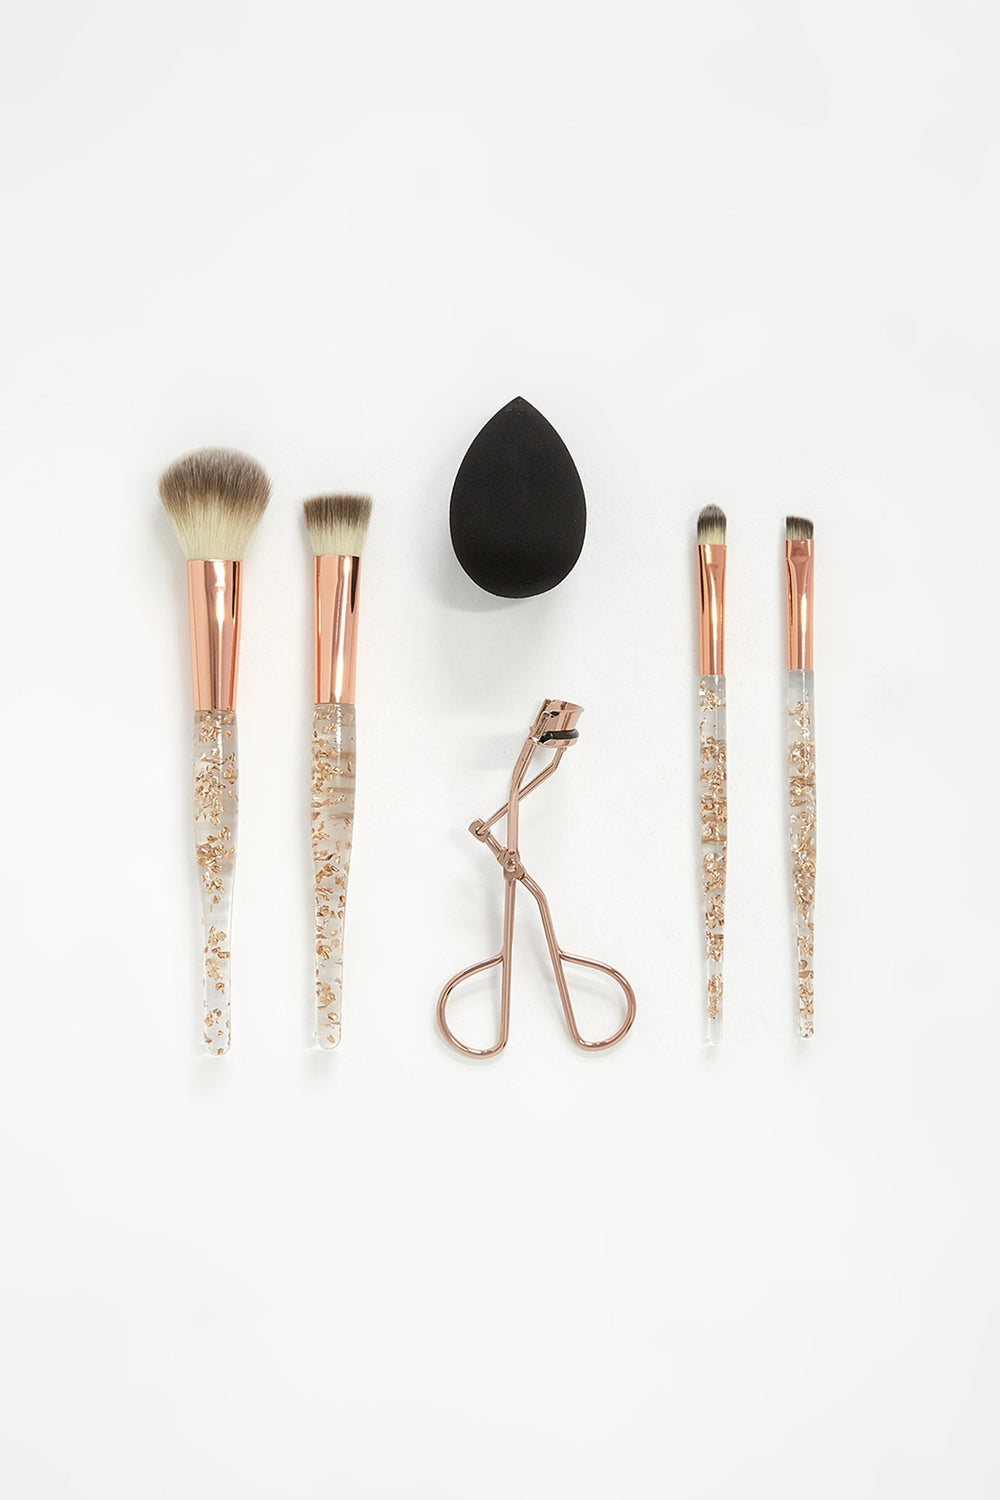 6-Piece Beauty Set Black